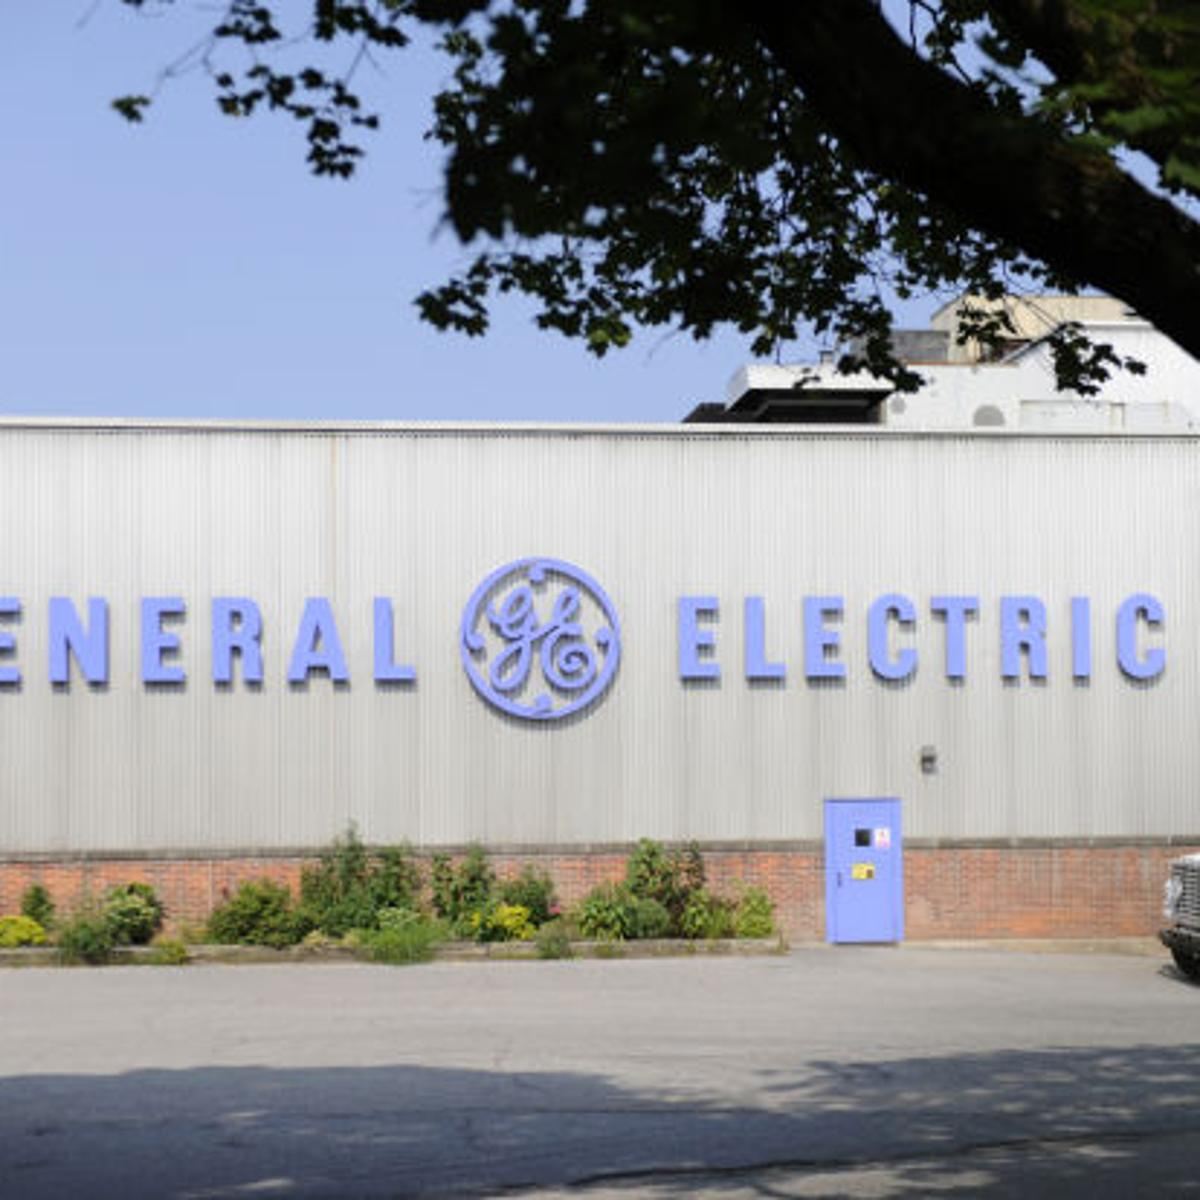 End of an era nears for GE and Fort Edward | Local